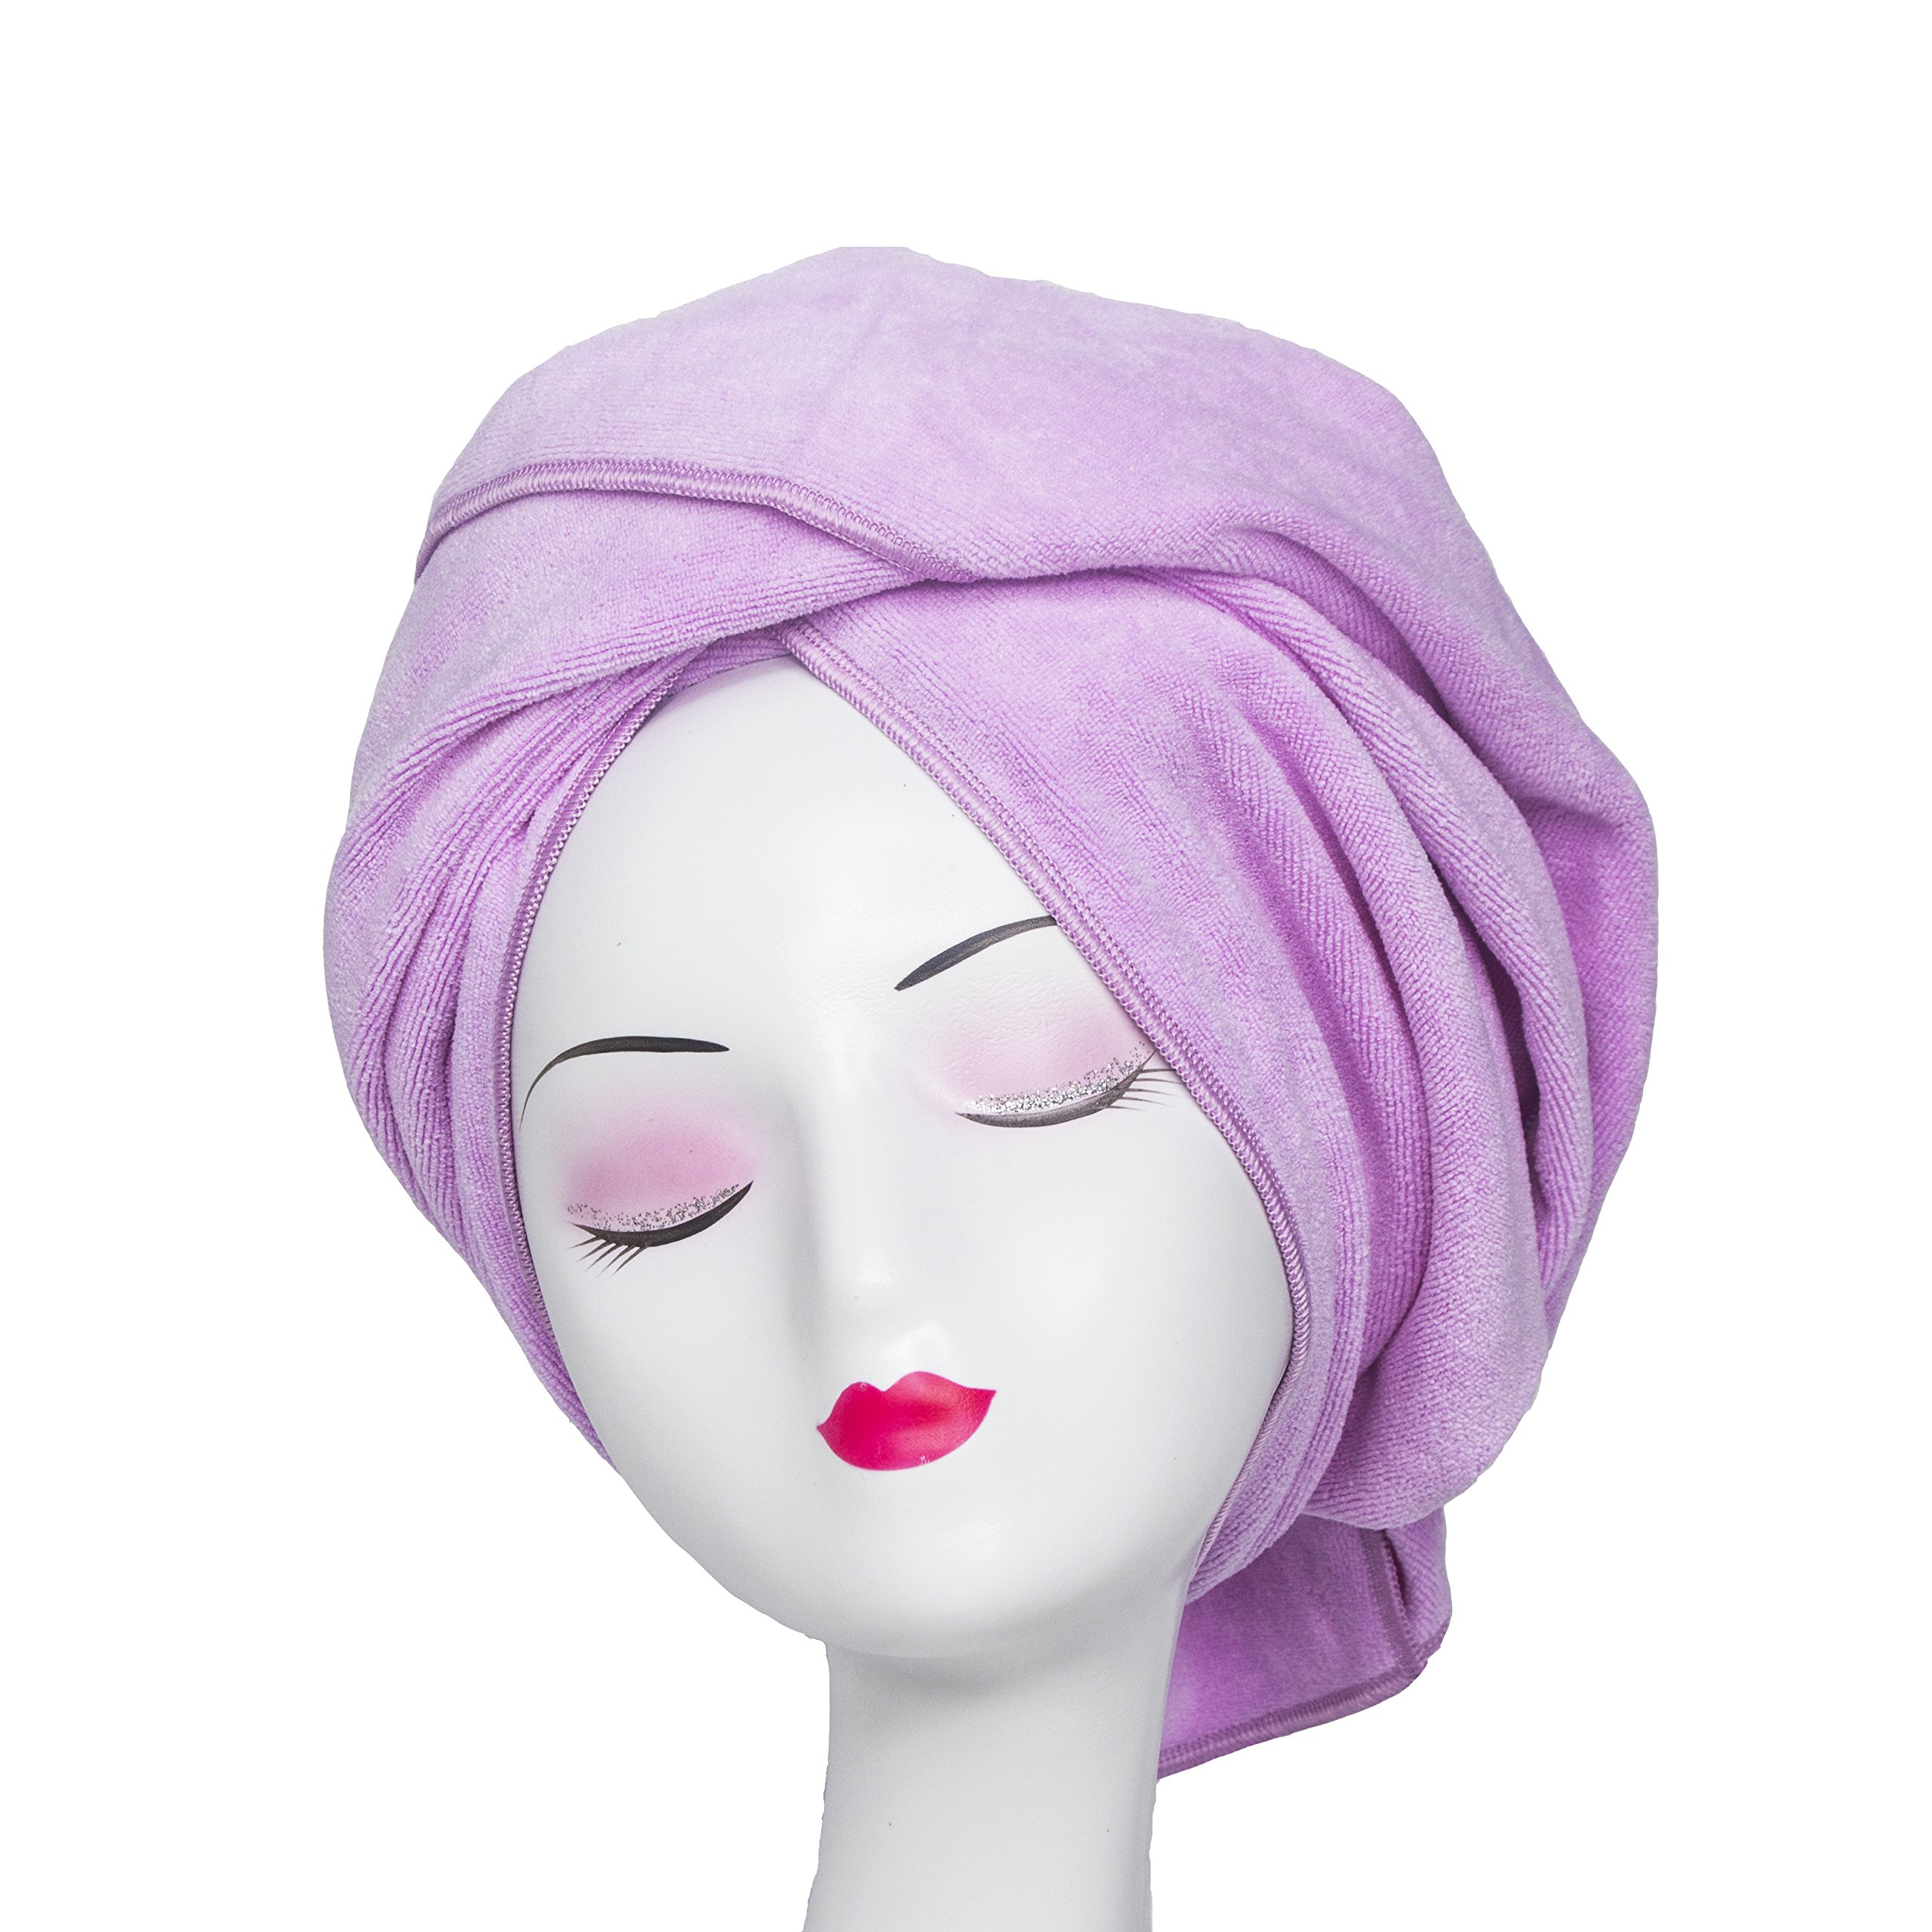 Microfiber Hair Towel Tancano Anti Frizz Hair Wrap Super Absorbent Curly Hair Drying Towel 23.6''x47'' Large Multifunction Towel for Bath Spa Makeup, Light Purple by TANCANO